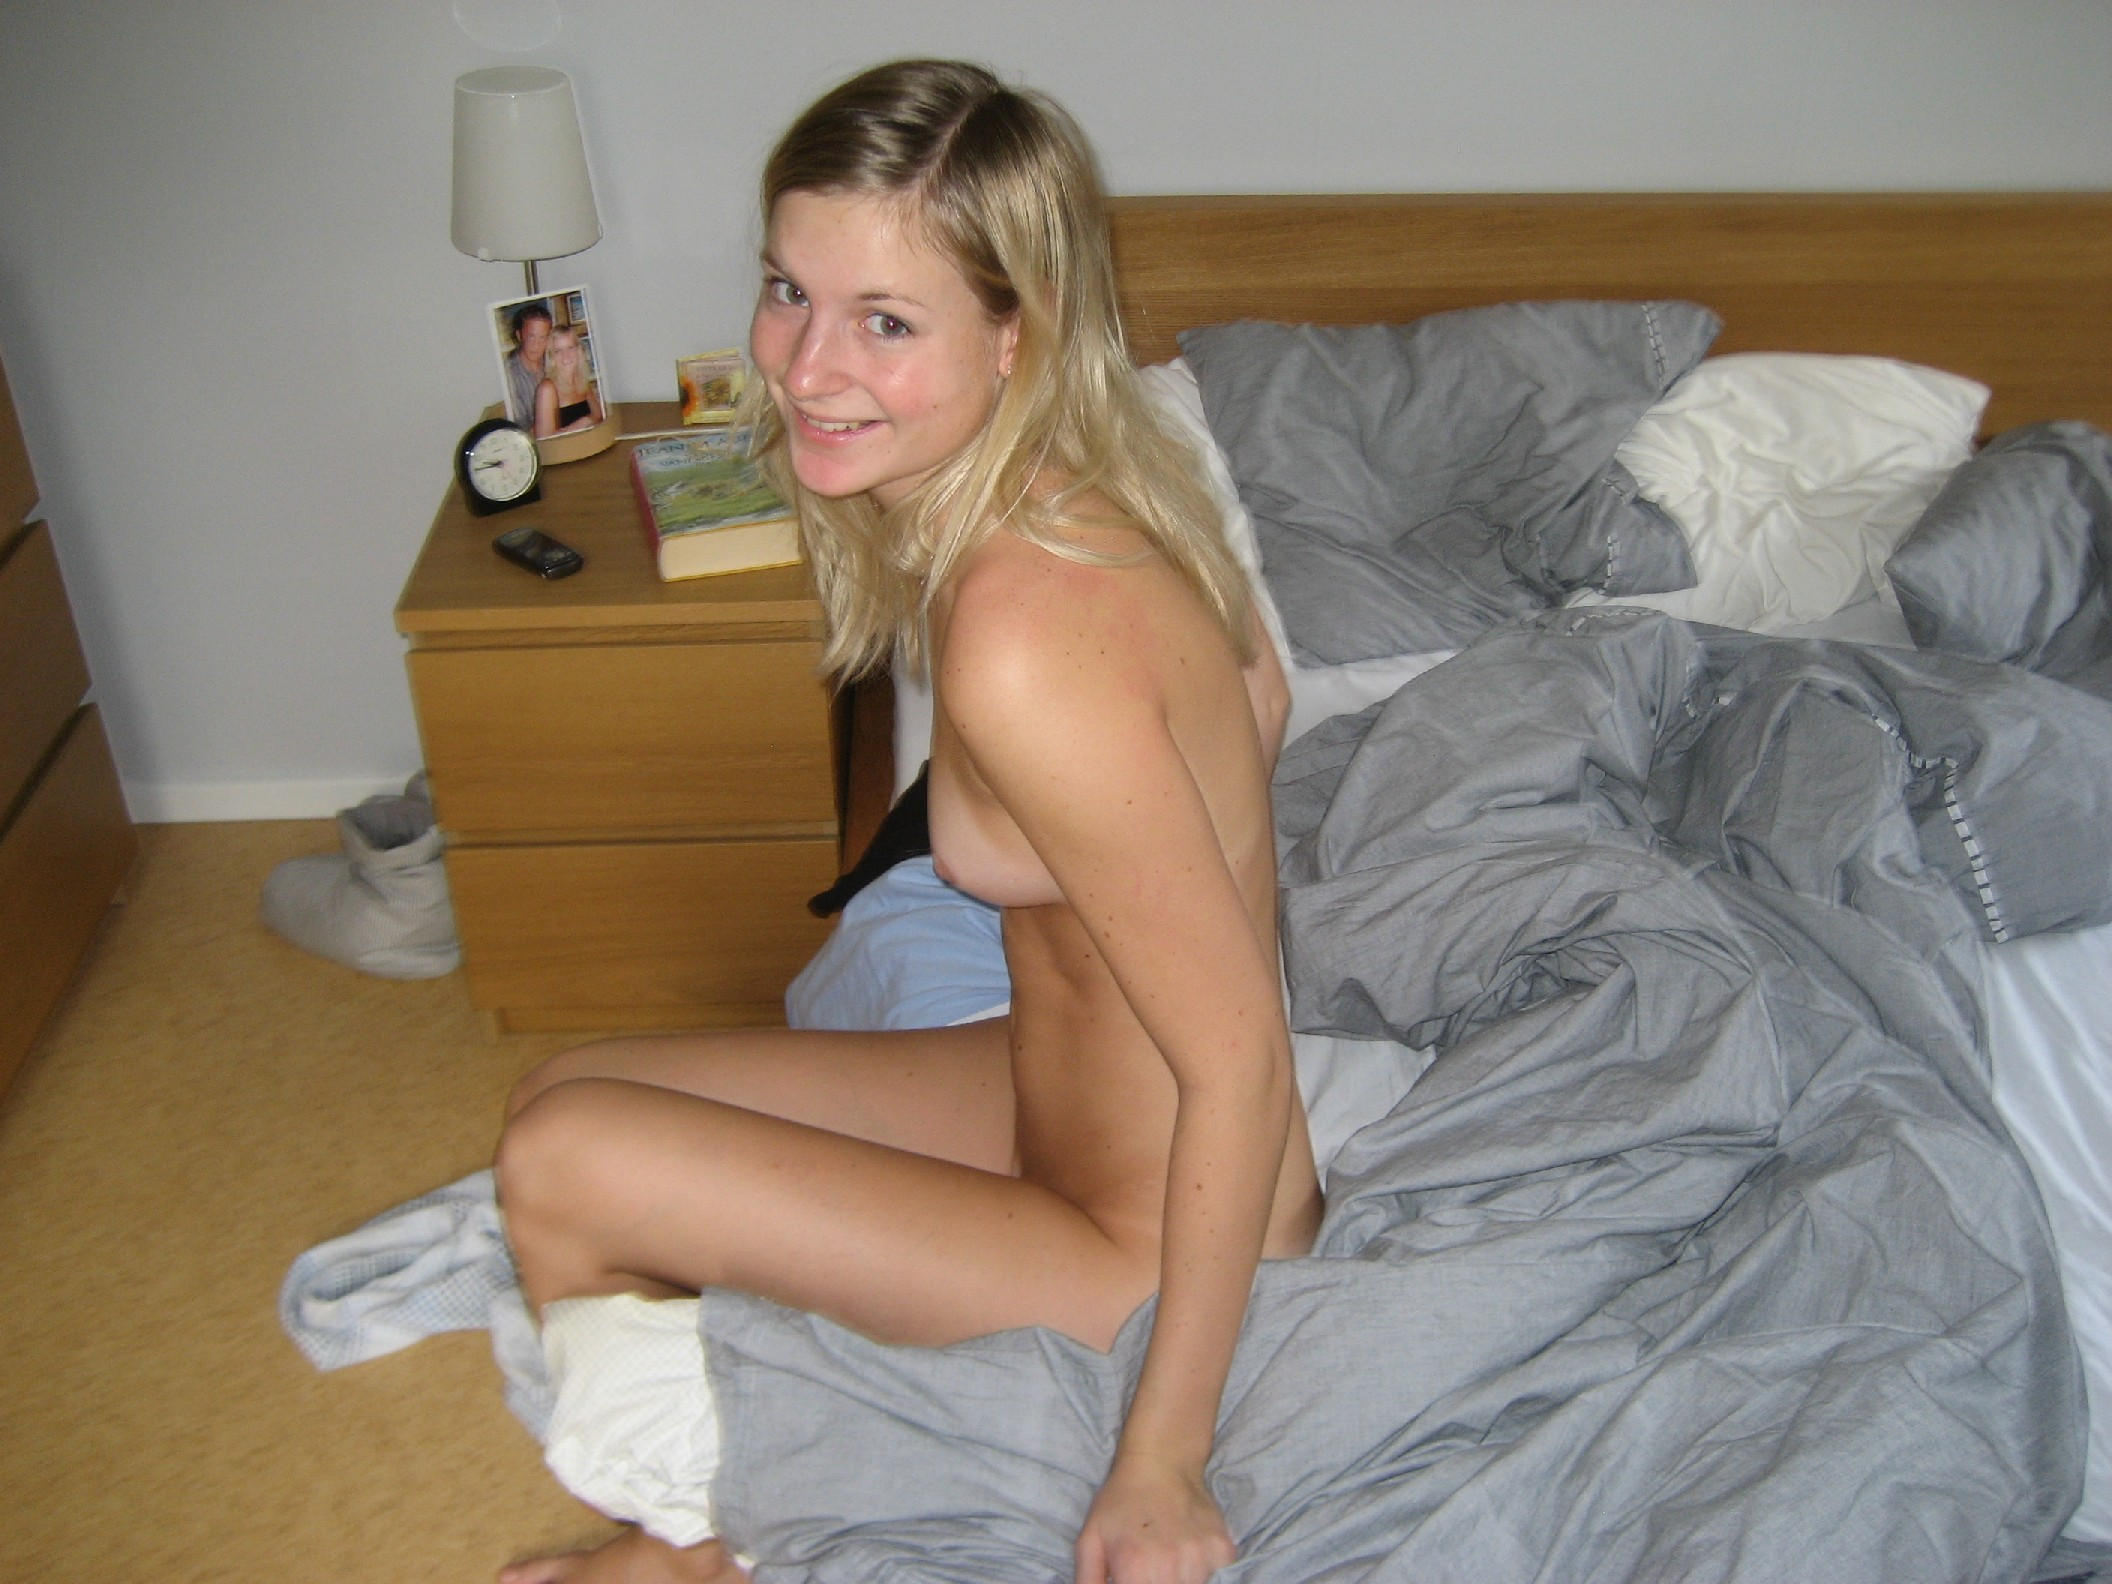 Girls together nude amateur